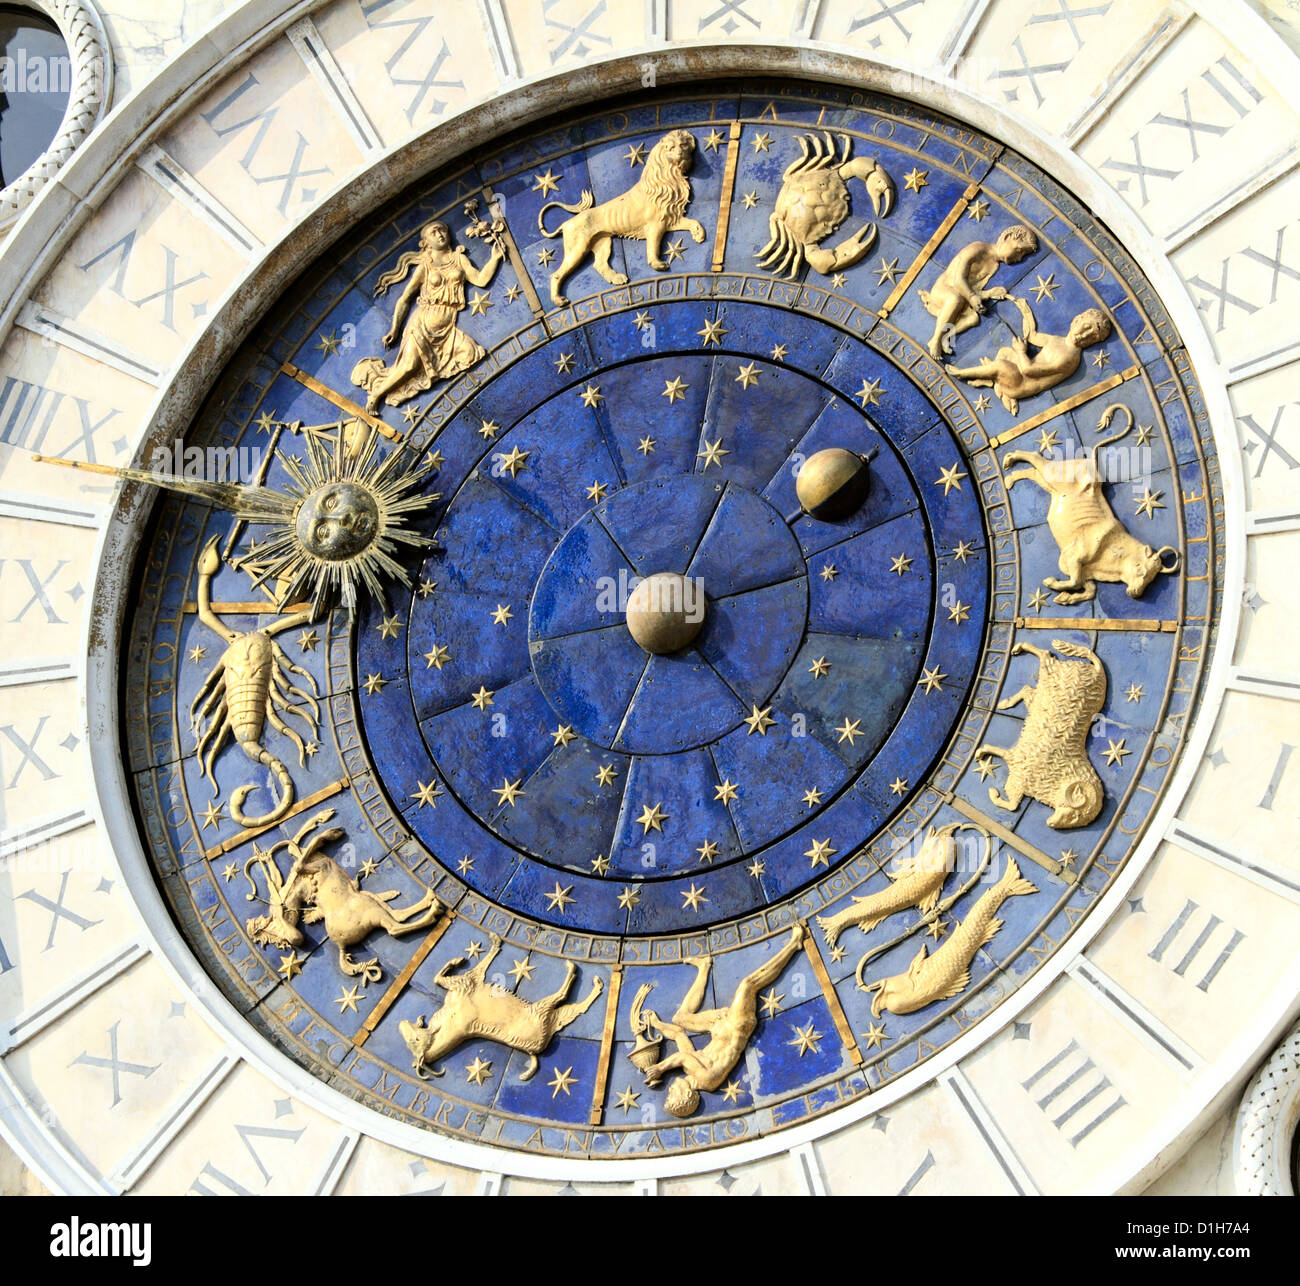 Astronomical Clock Tower (Torre dell'Orologio) Details. St. Mark's Square (Piazza San Marko), Venice, Italy. Tilt Stock Photo